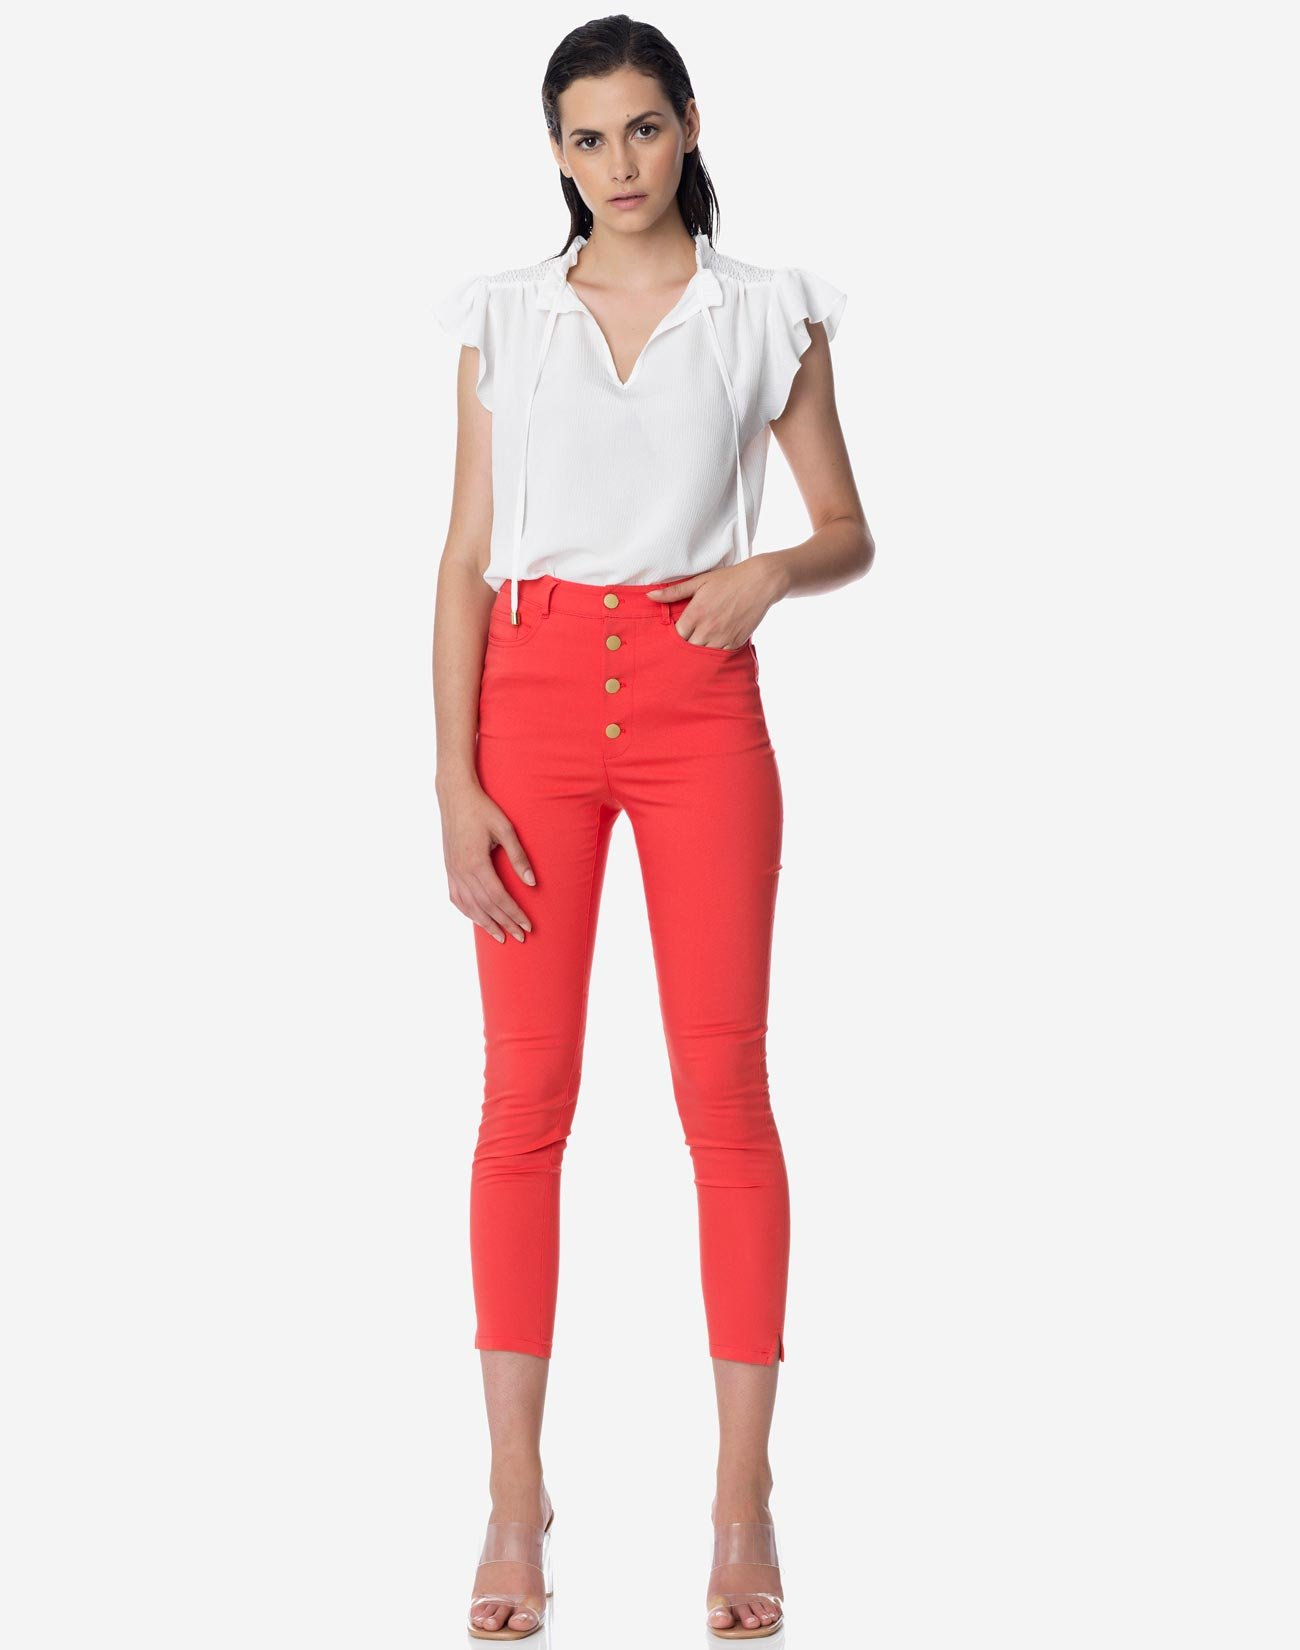 High waist button fly trousers